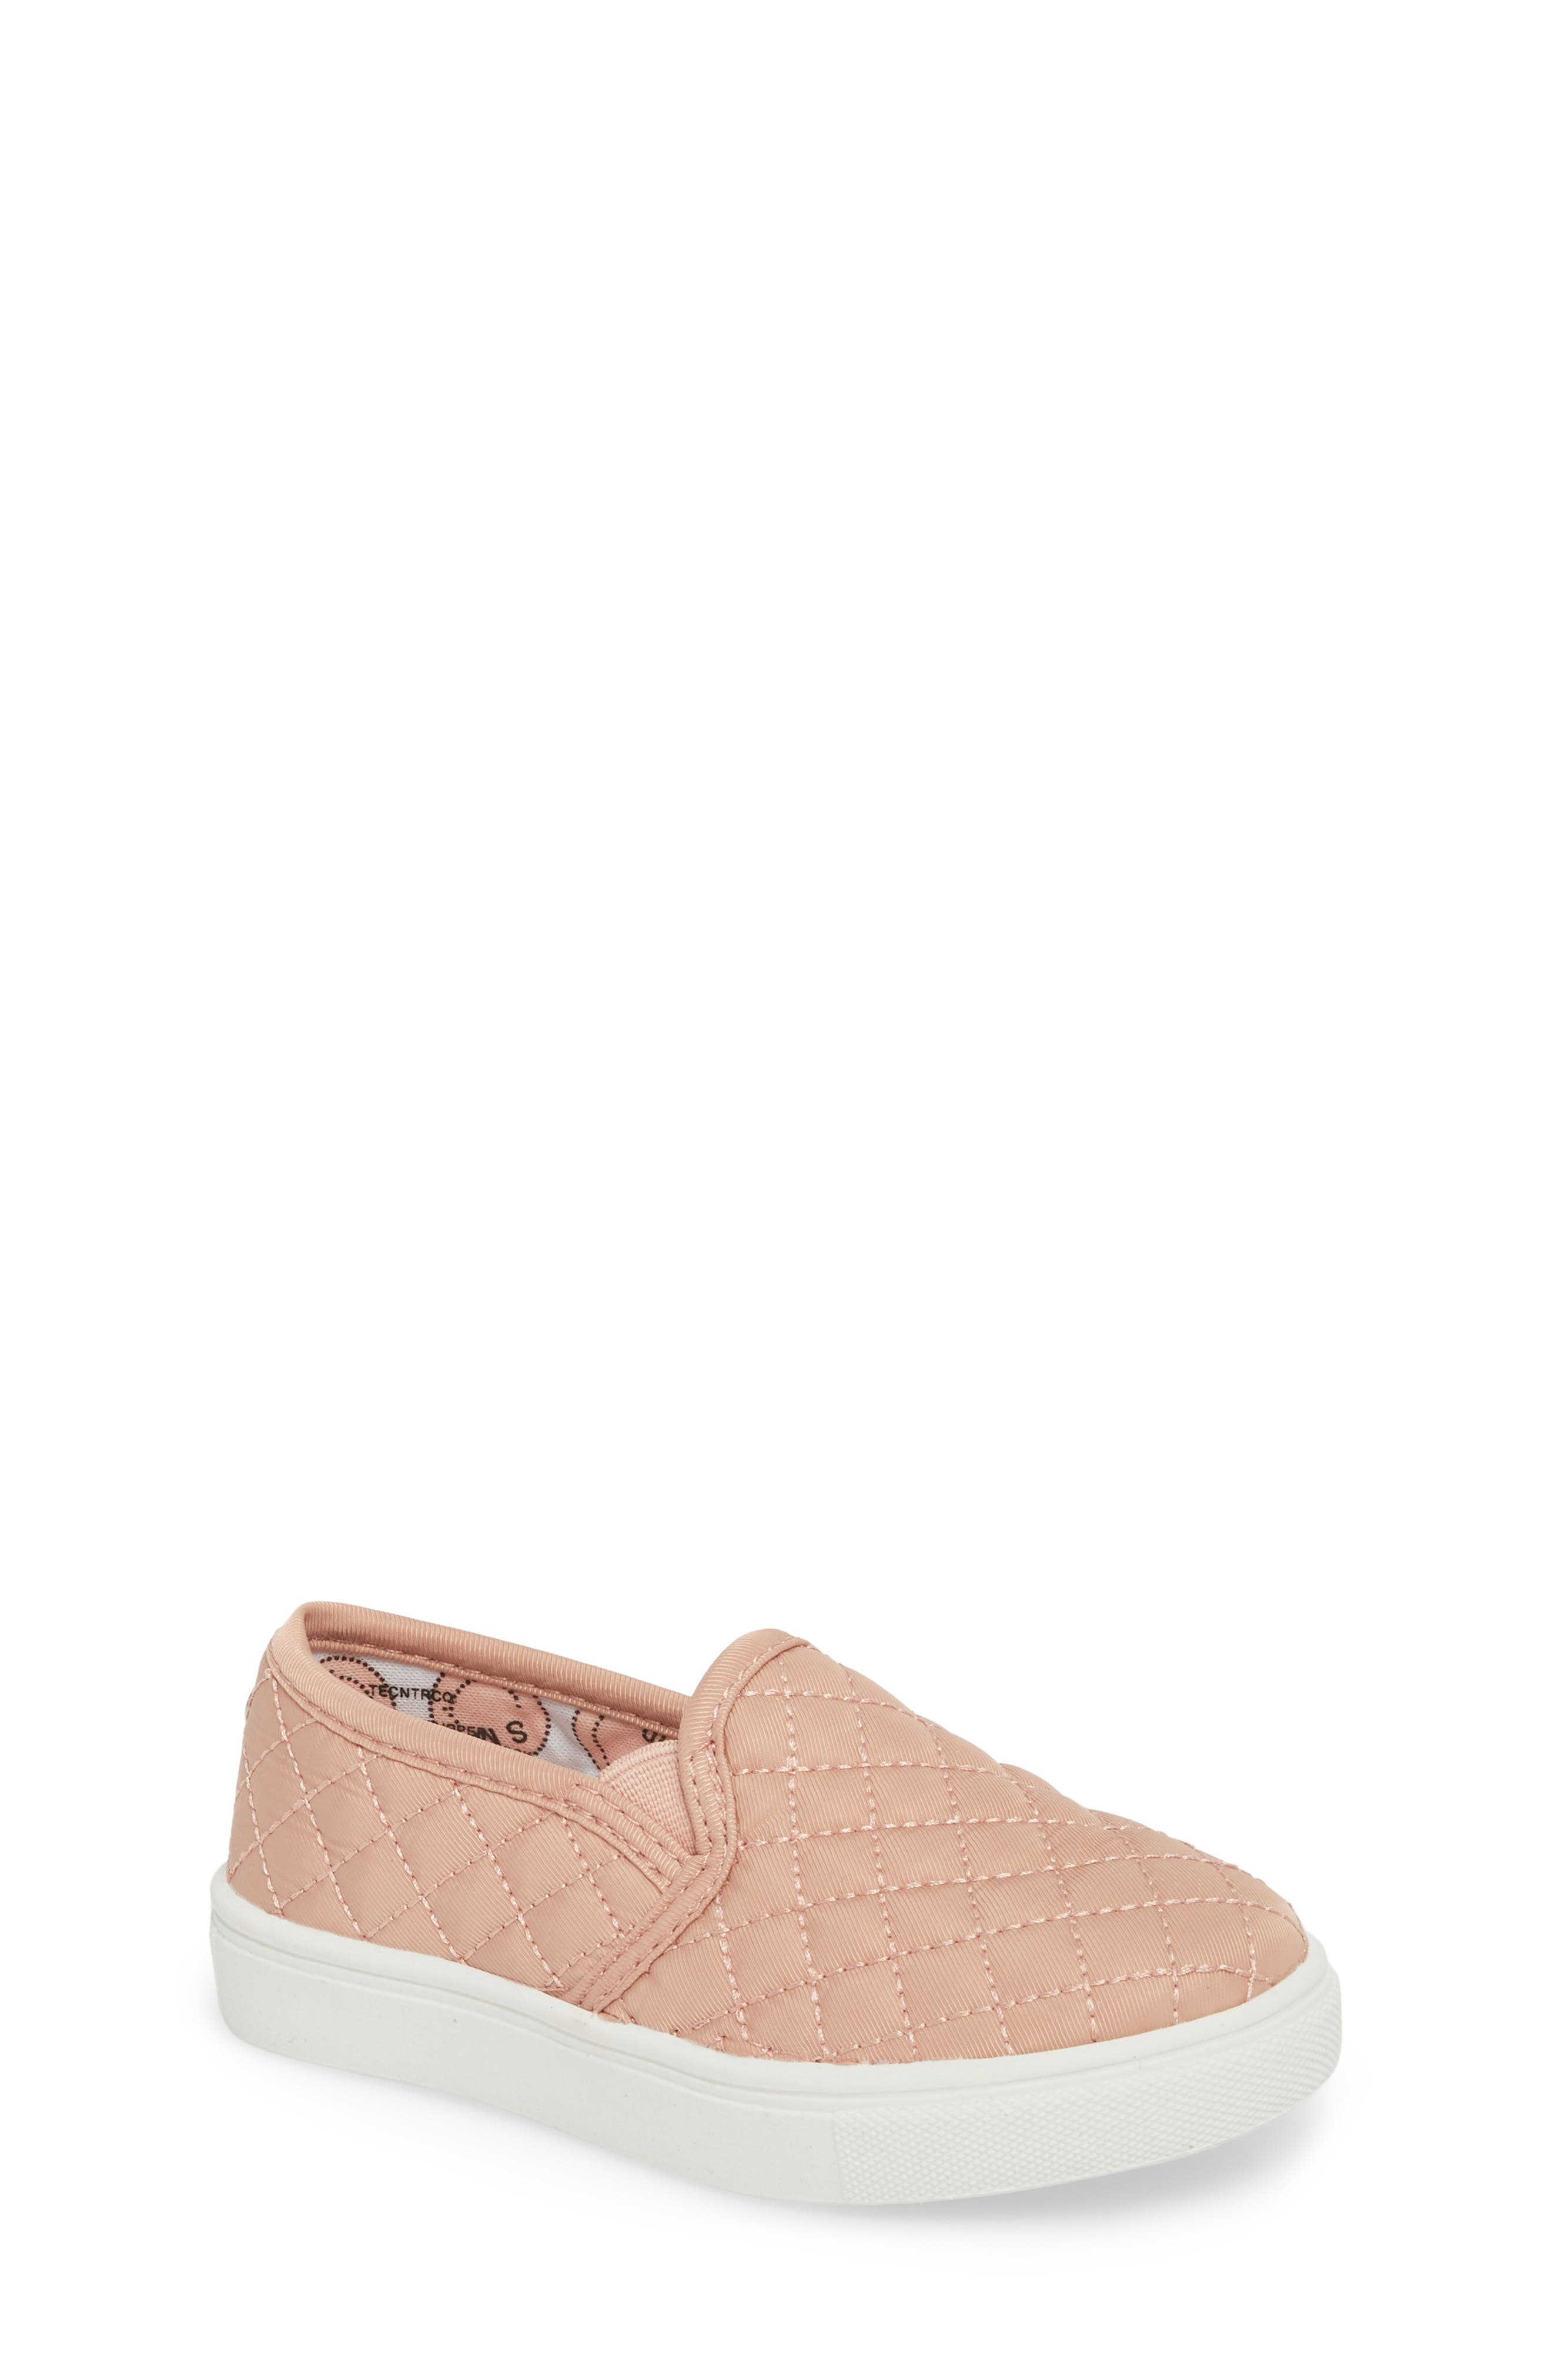 Tecntrc Quilted Slip-On Sneaker,                         Main,                         color, BLUSH